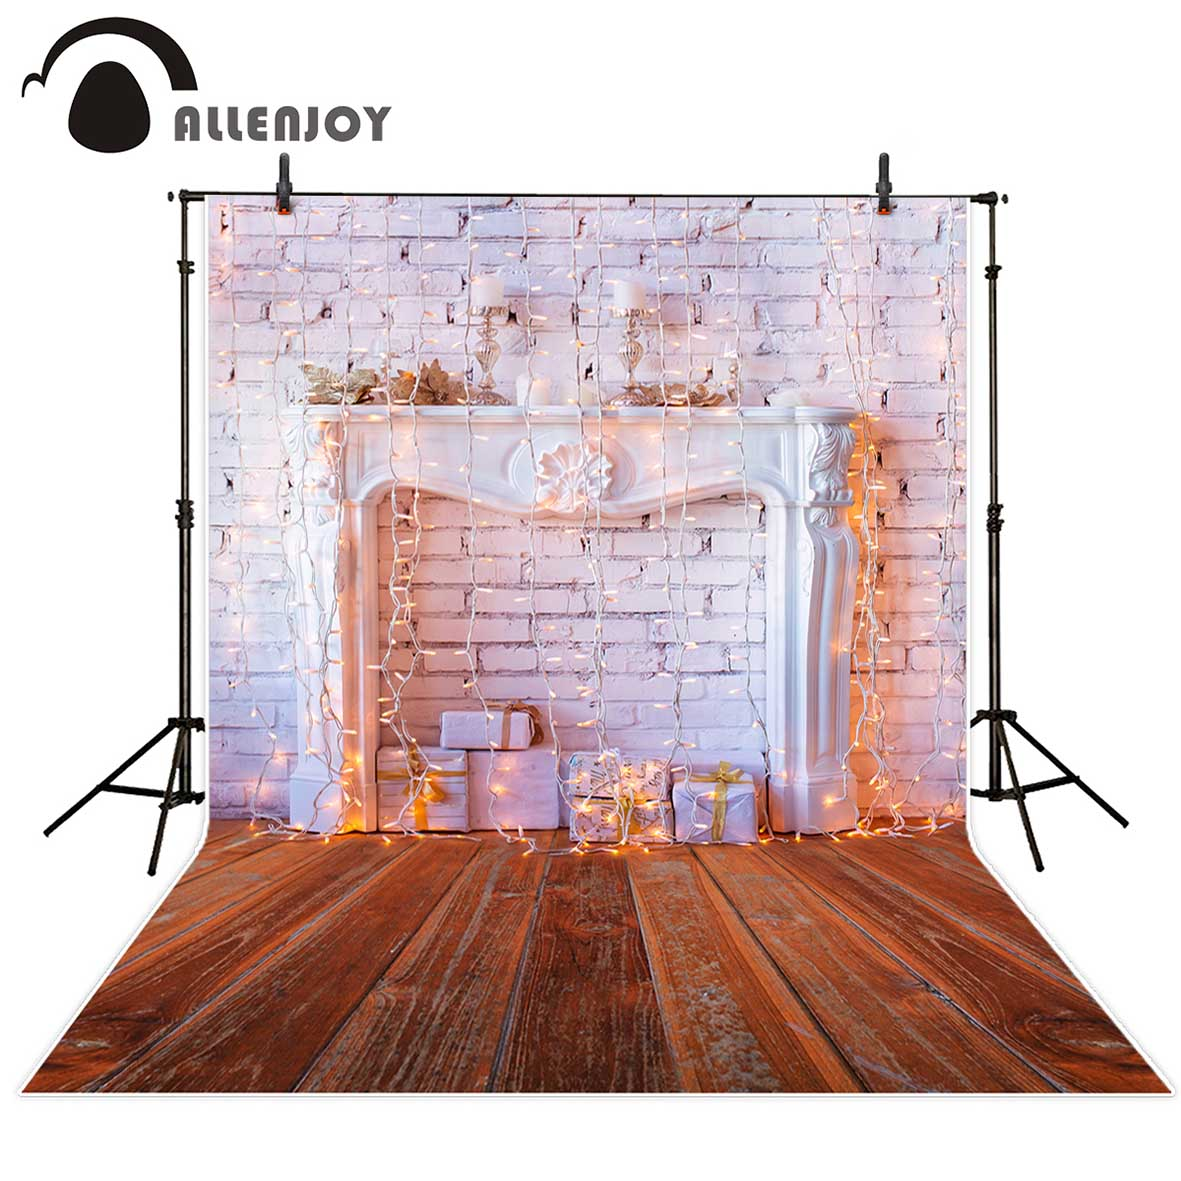 Allenjoy christmas photography backdrops Christmas background gifts white brick wall wooden floor bulbs table for baby for kids my apartment